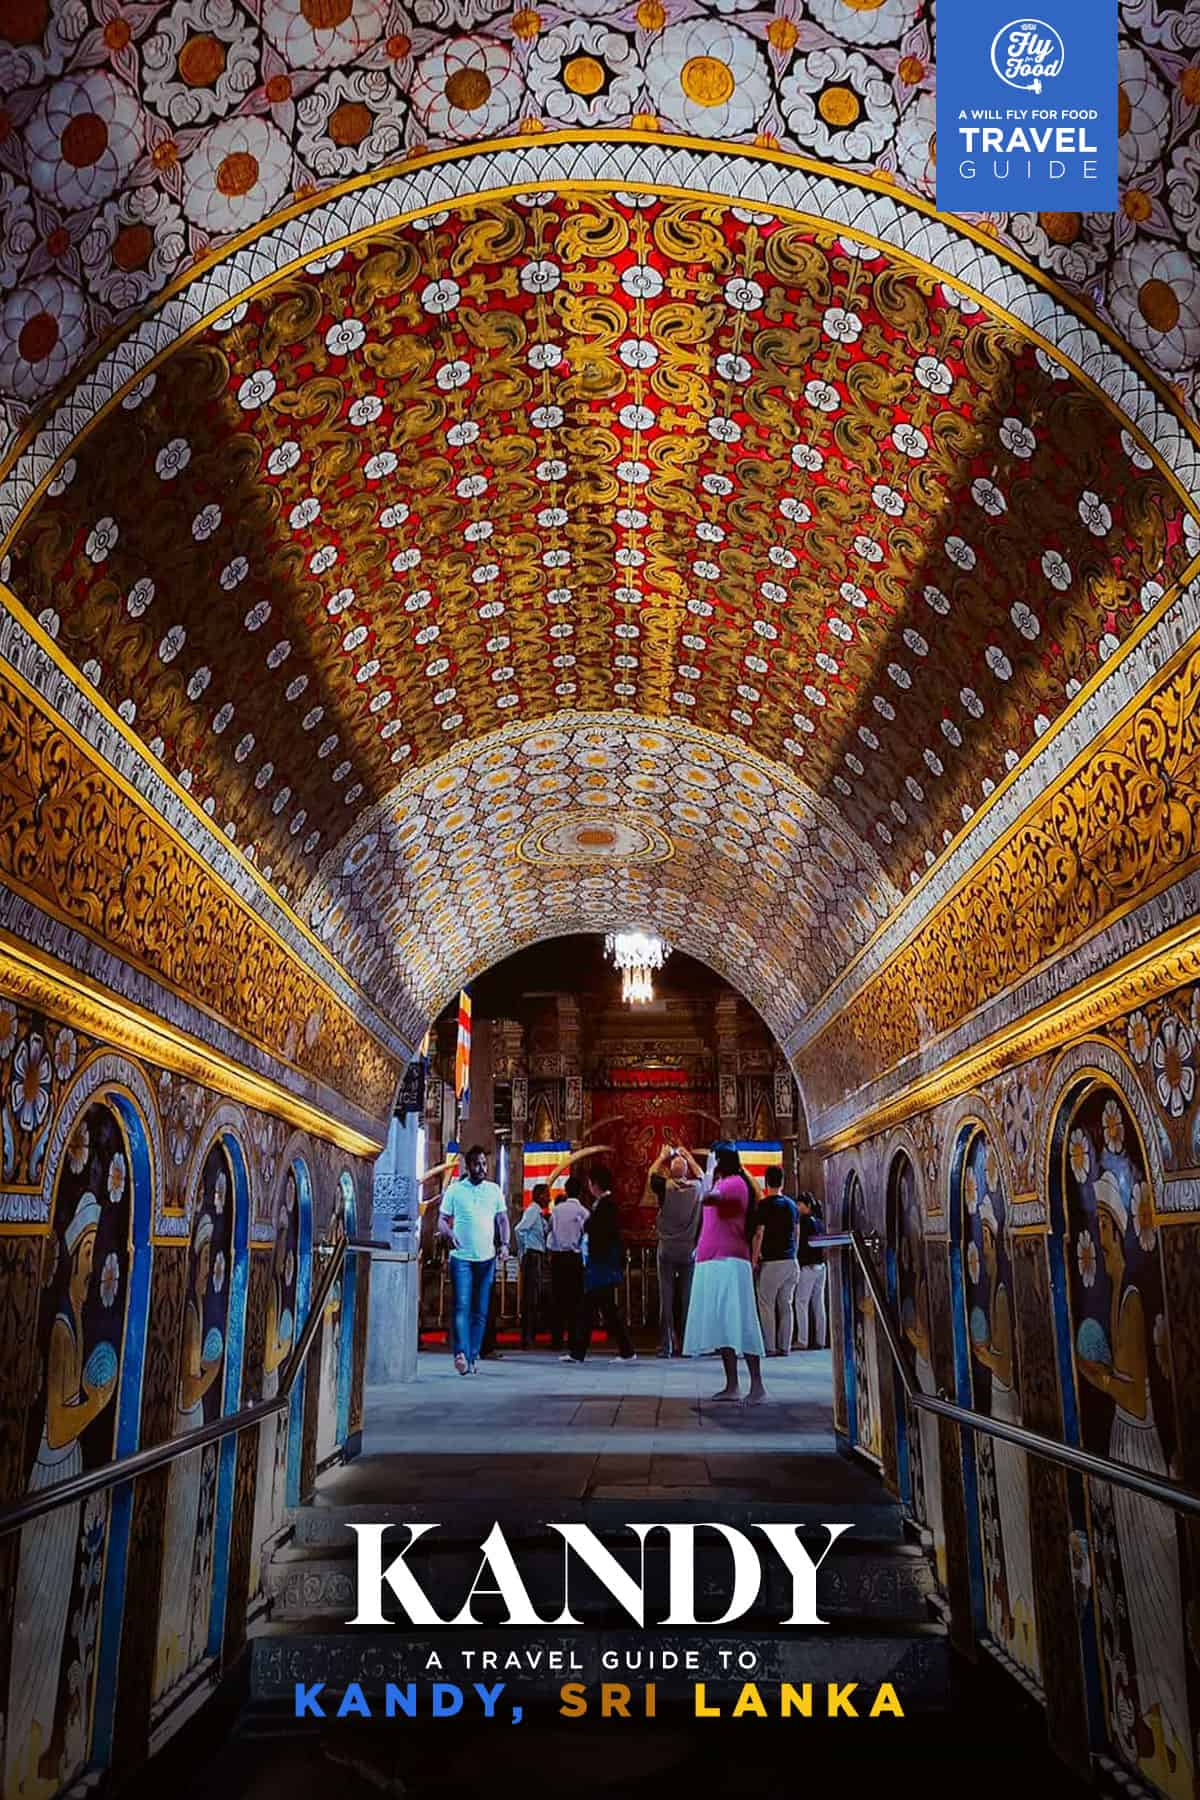 Temple of the Sacred Tooth Relic, Kandy, Sri Lanka